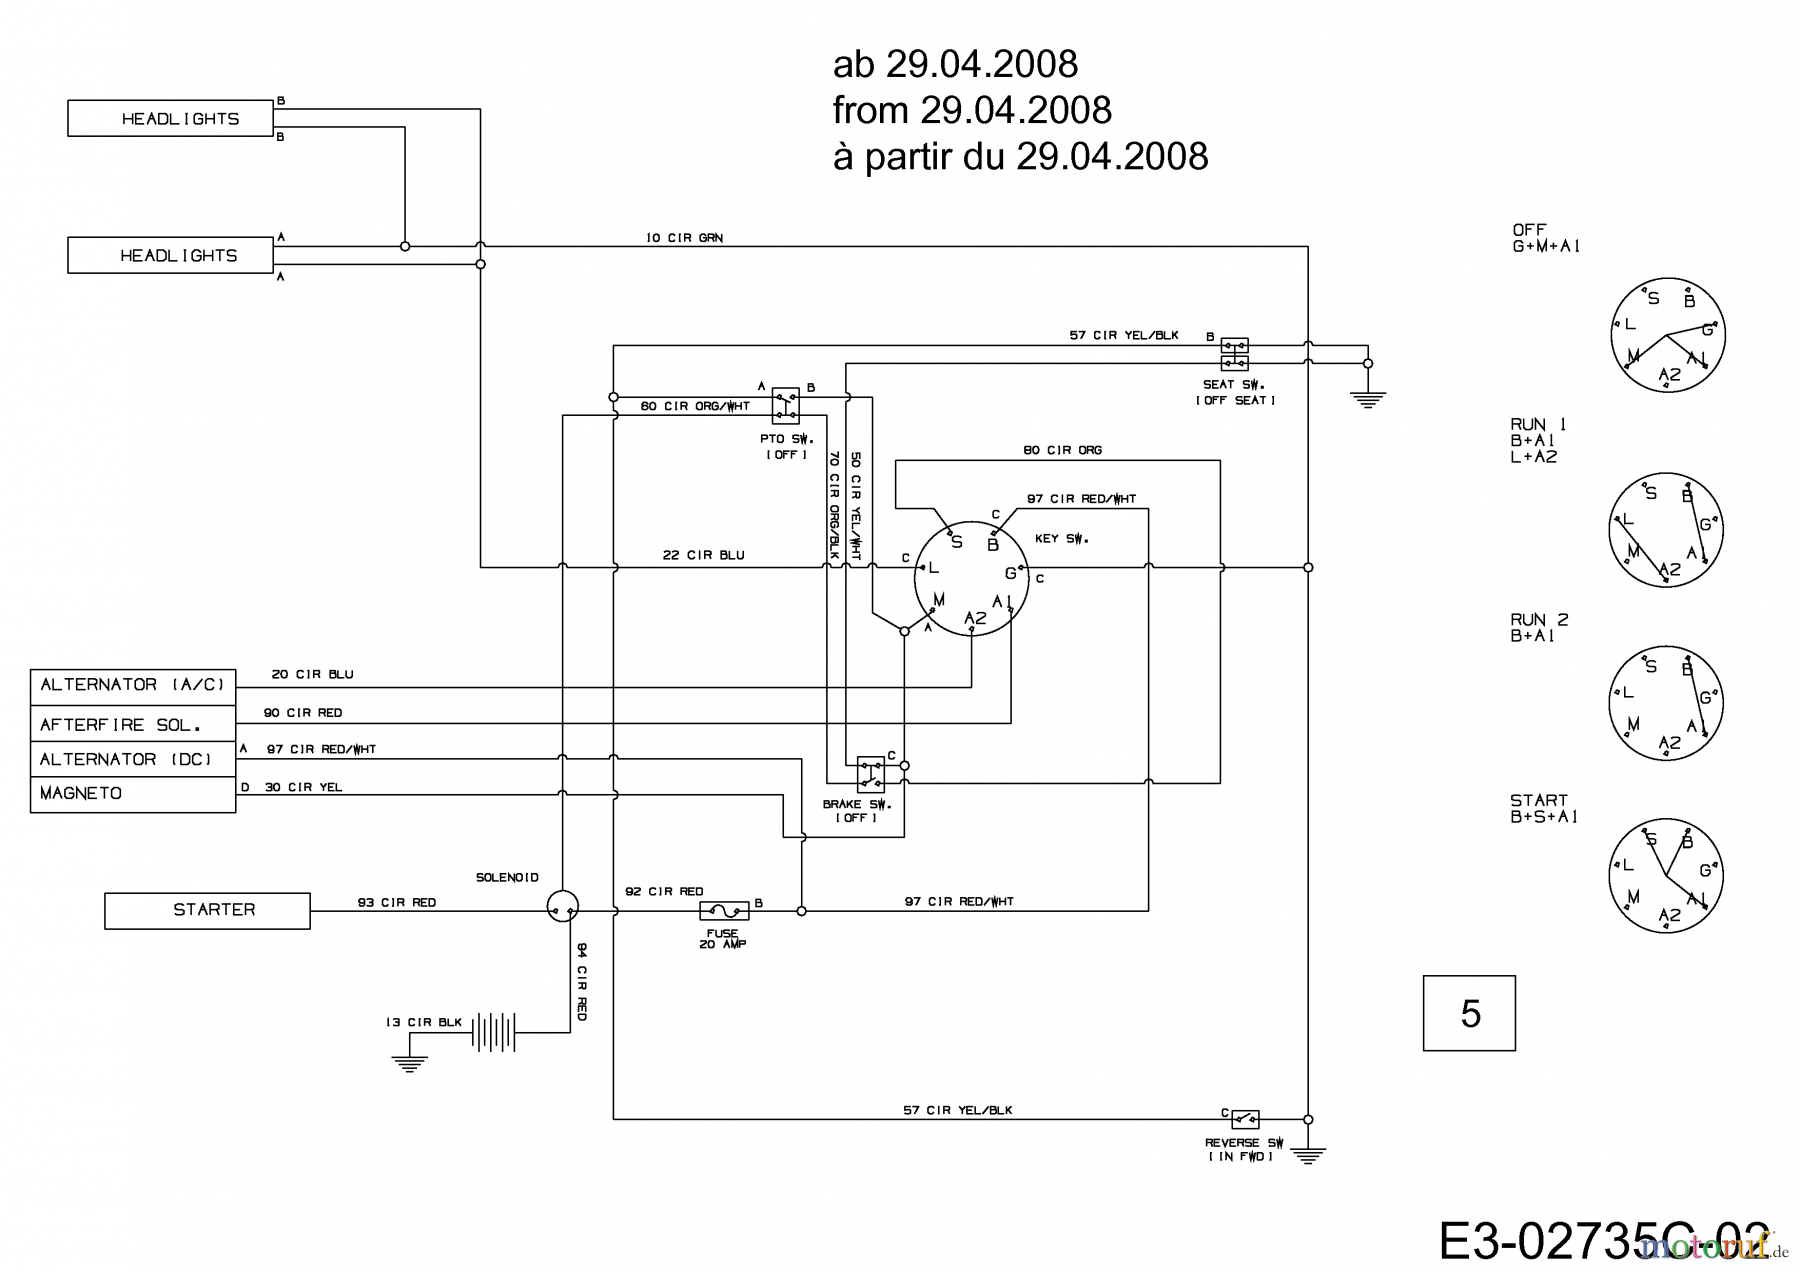 Craftsman Lt2000 247 288841 Wiring Diagram In - Wellread - Craftsman Lt2000 Wiring Diagram